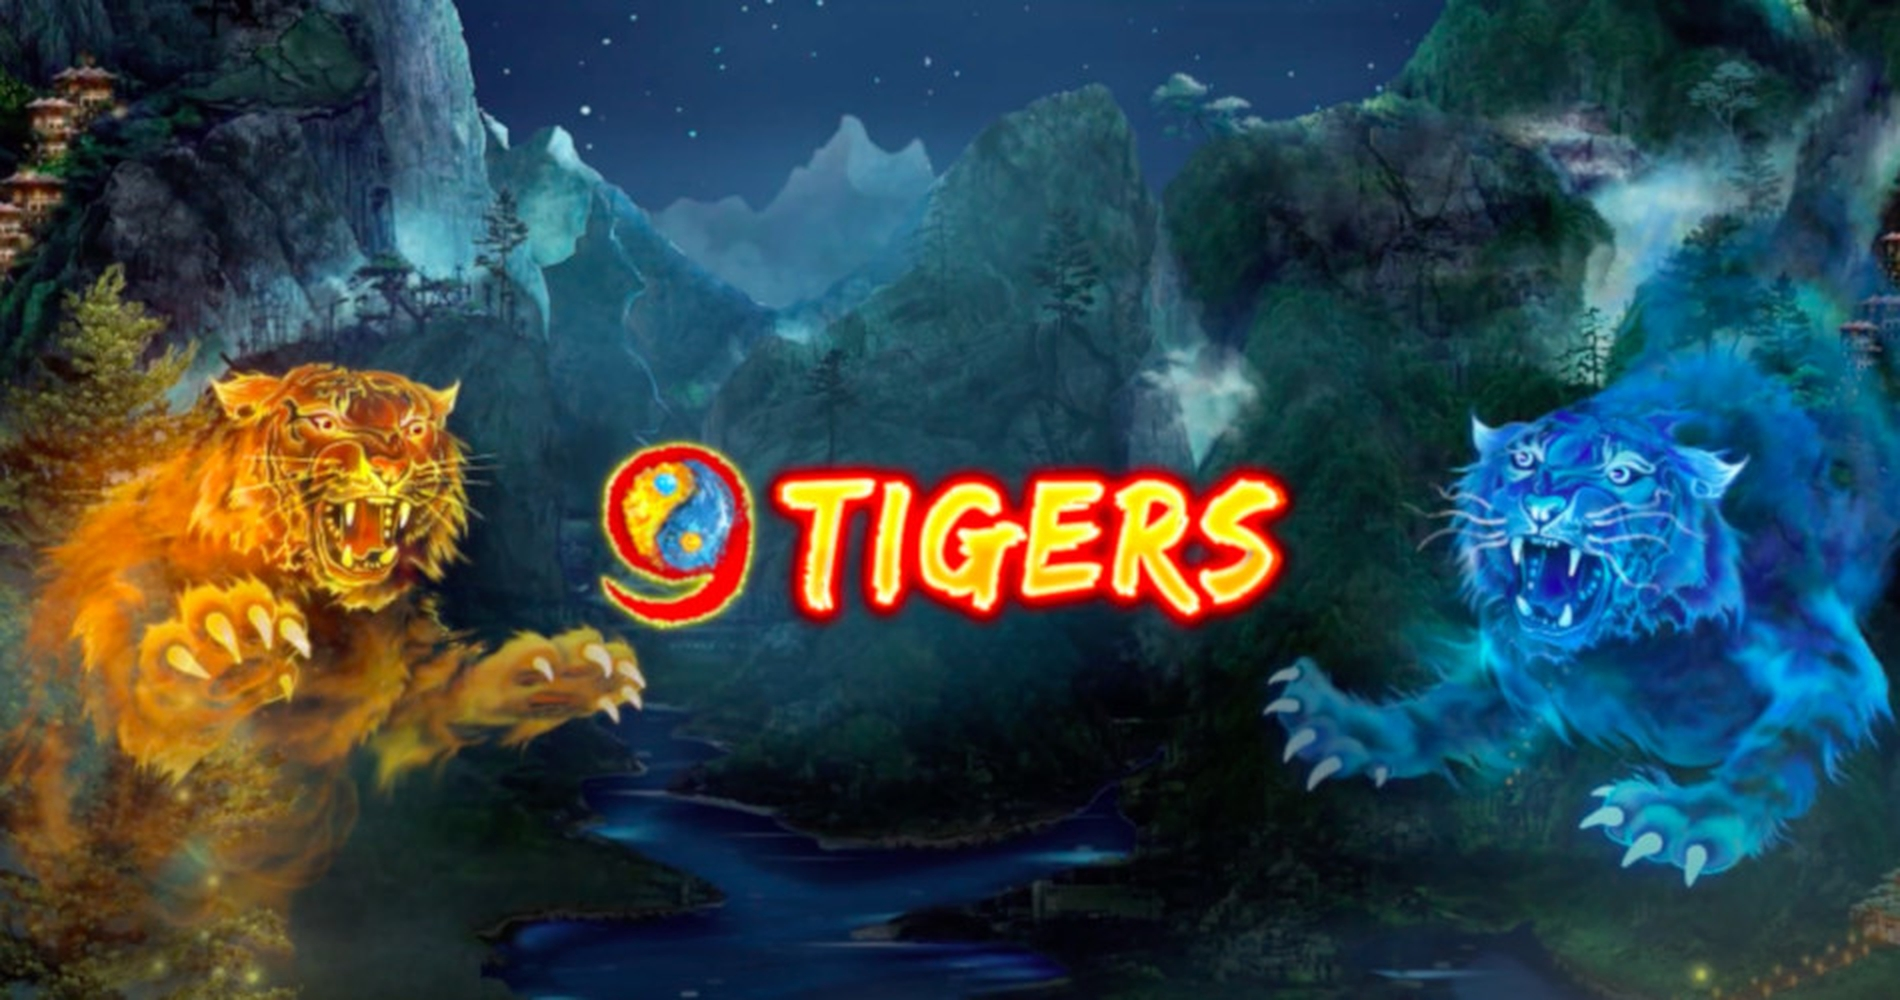 9 Tigers Online Slot Demo Game by Wazdan